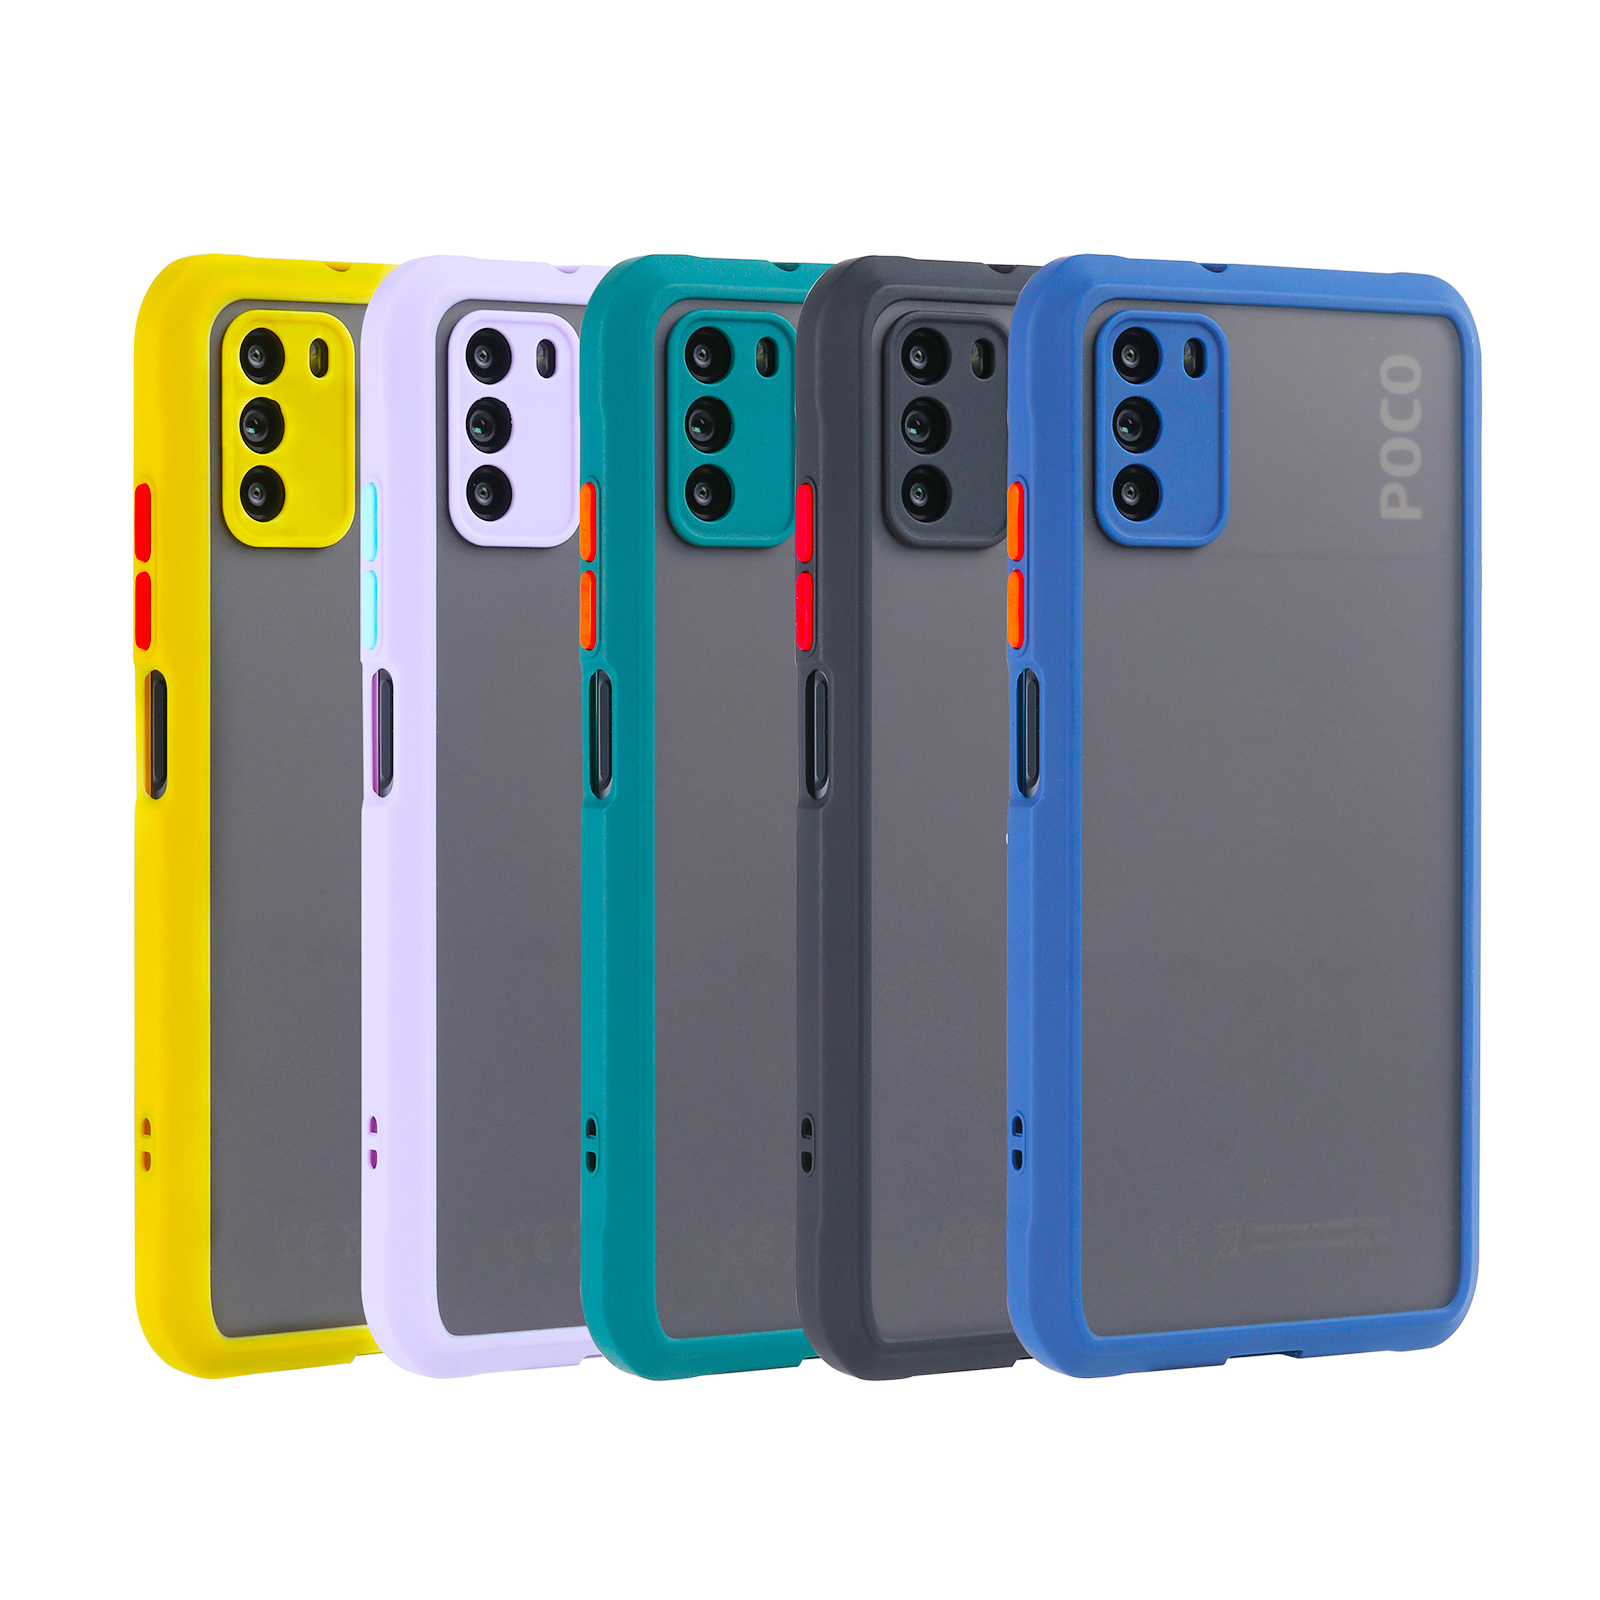 New Xiaomi Poco M3 Case Fashion Matte Back Cover Anti-Finger Coating Shockproof Protection PC+TPU For POCO M3 X3 Pro X3 NFC Case